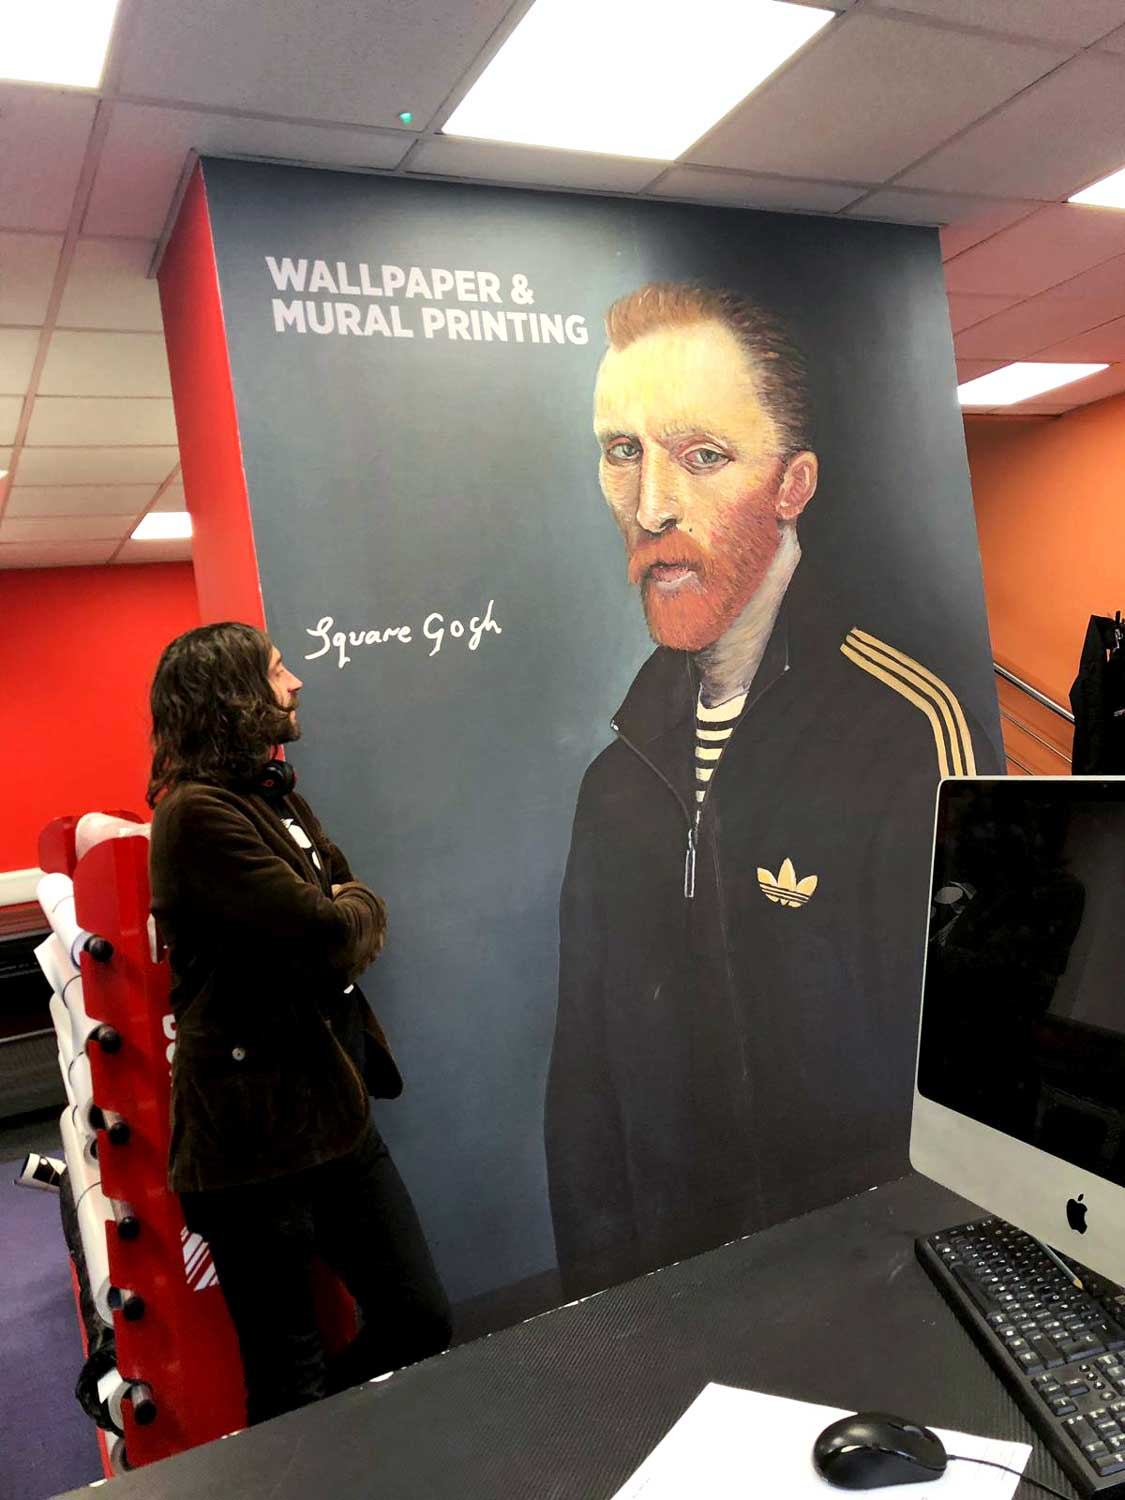 Local artist Ross Muir, standing next to a printed wall mural of one of his prints